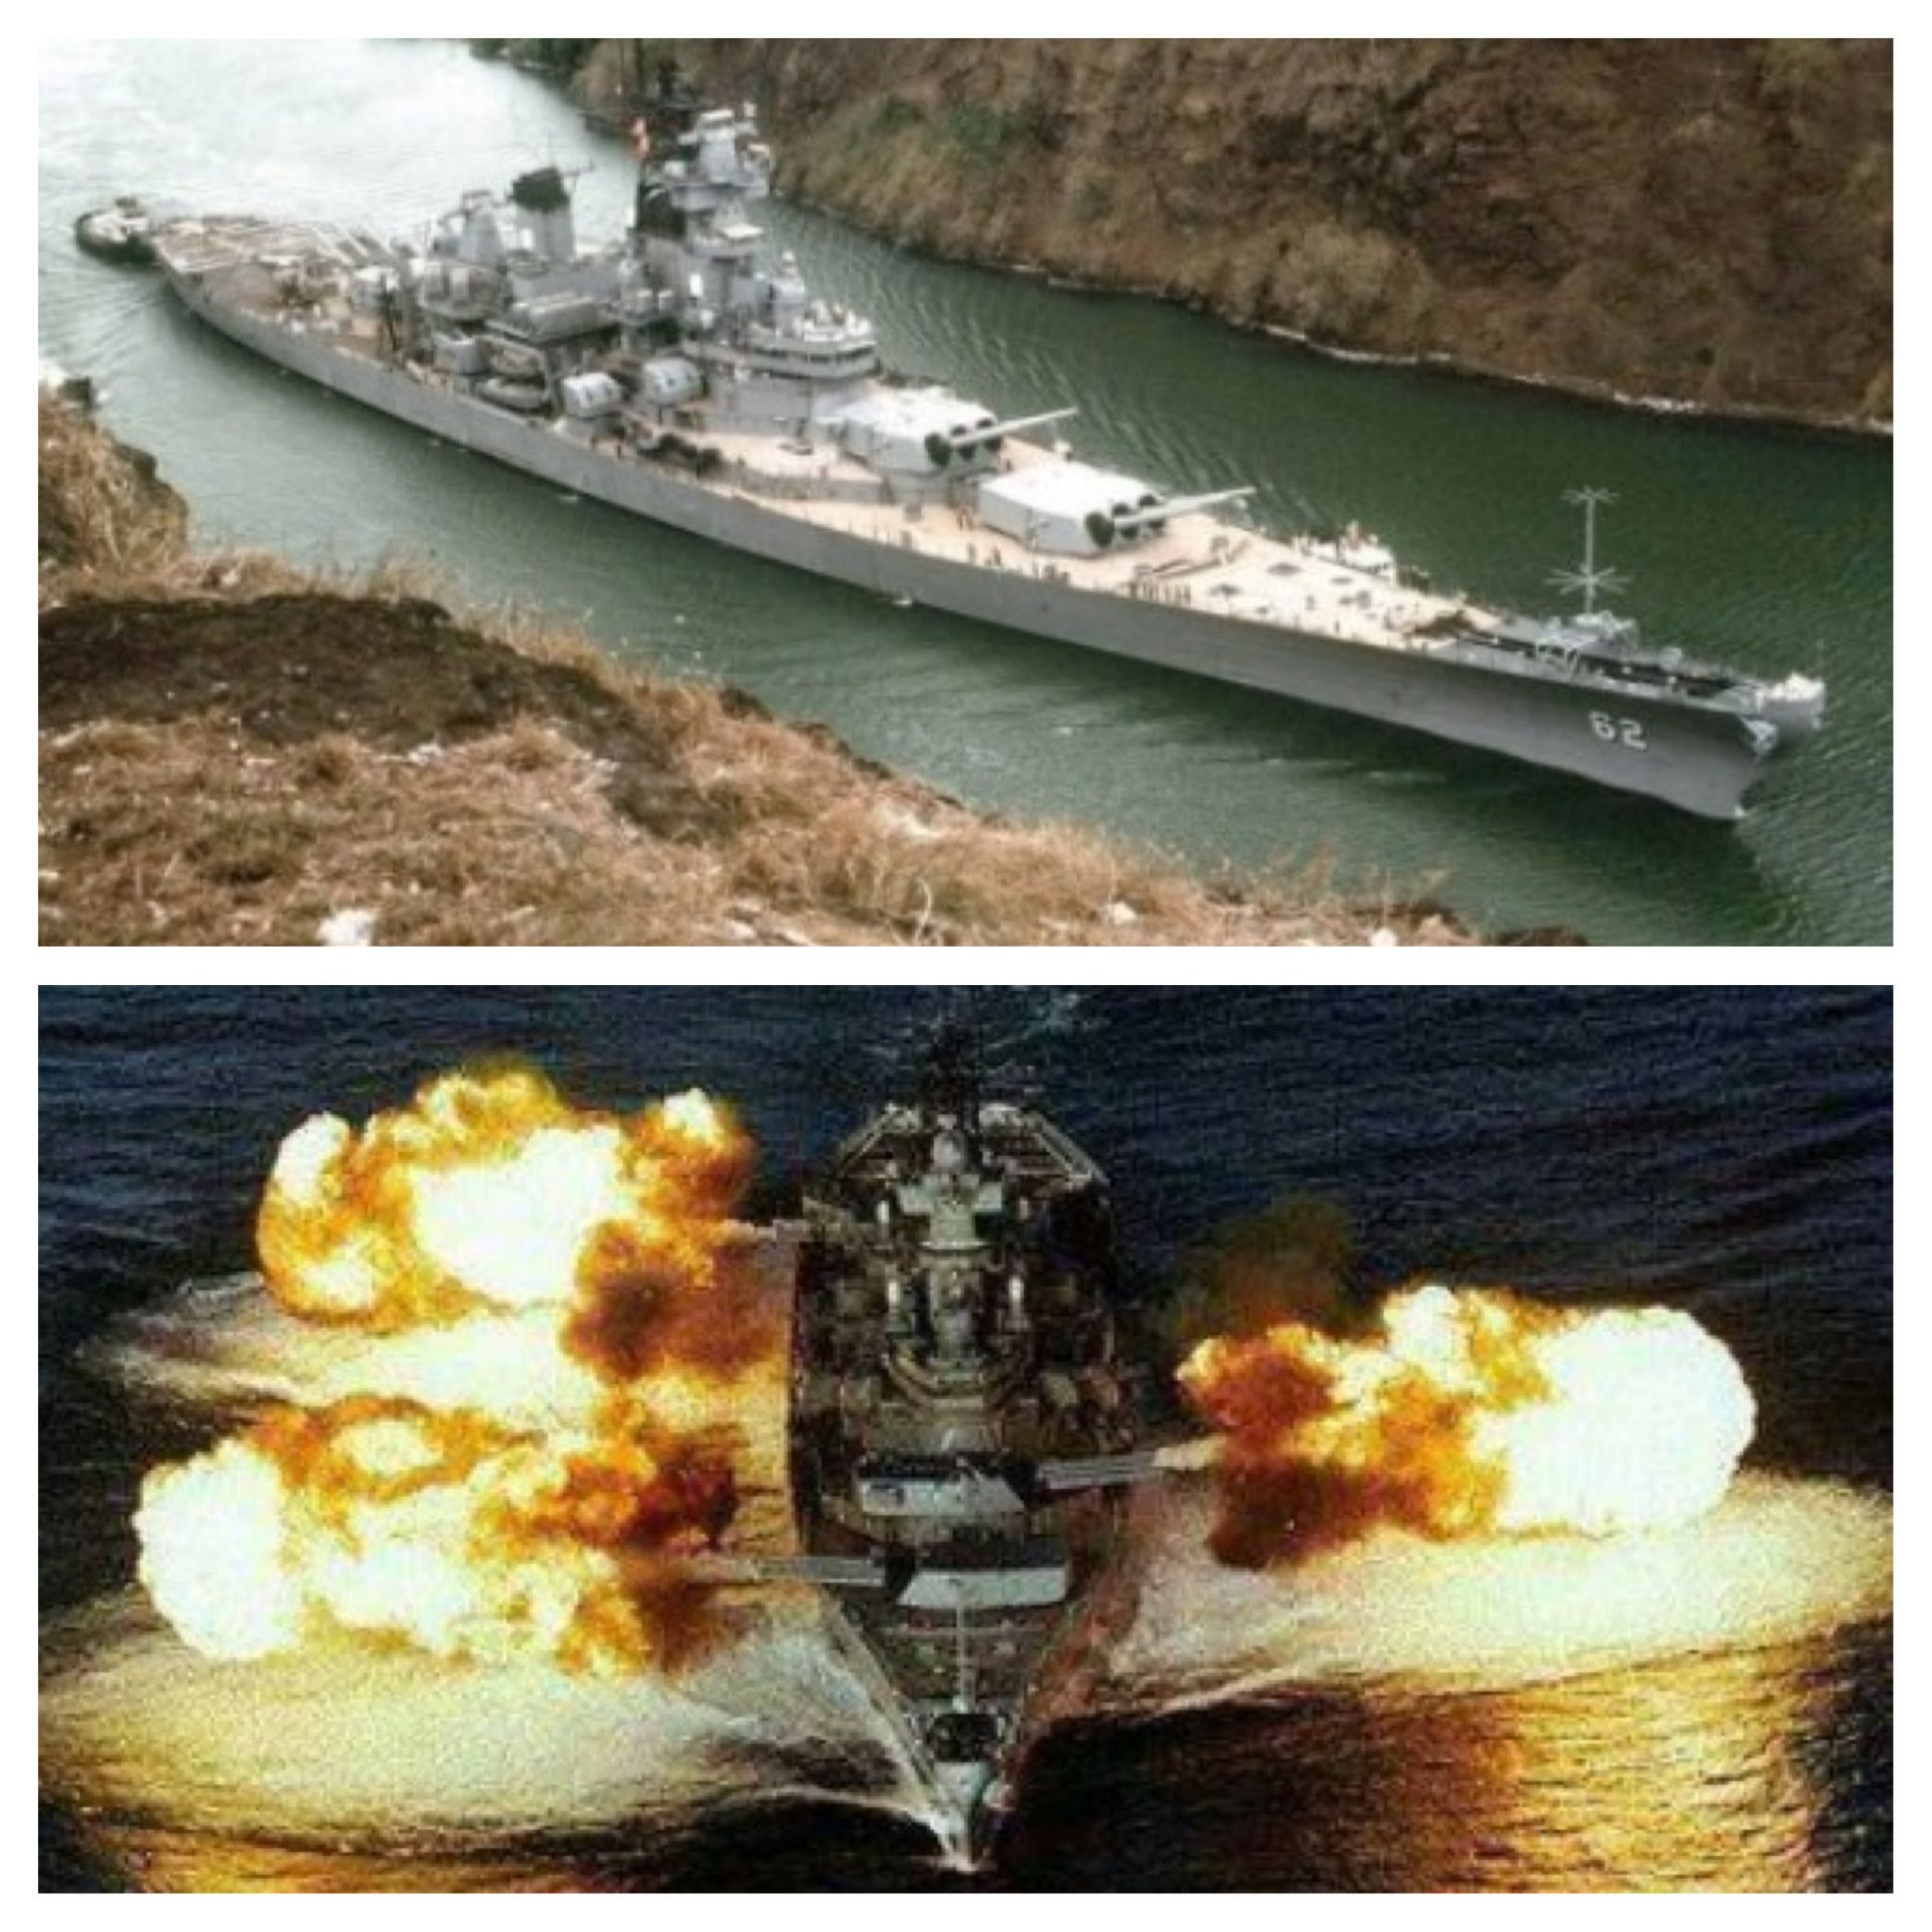 Navy ship transport armies and invations so go navy! #myfamisnavyfam